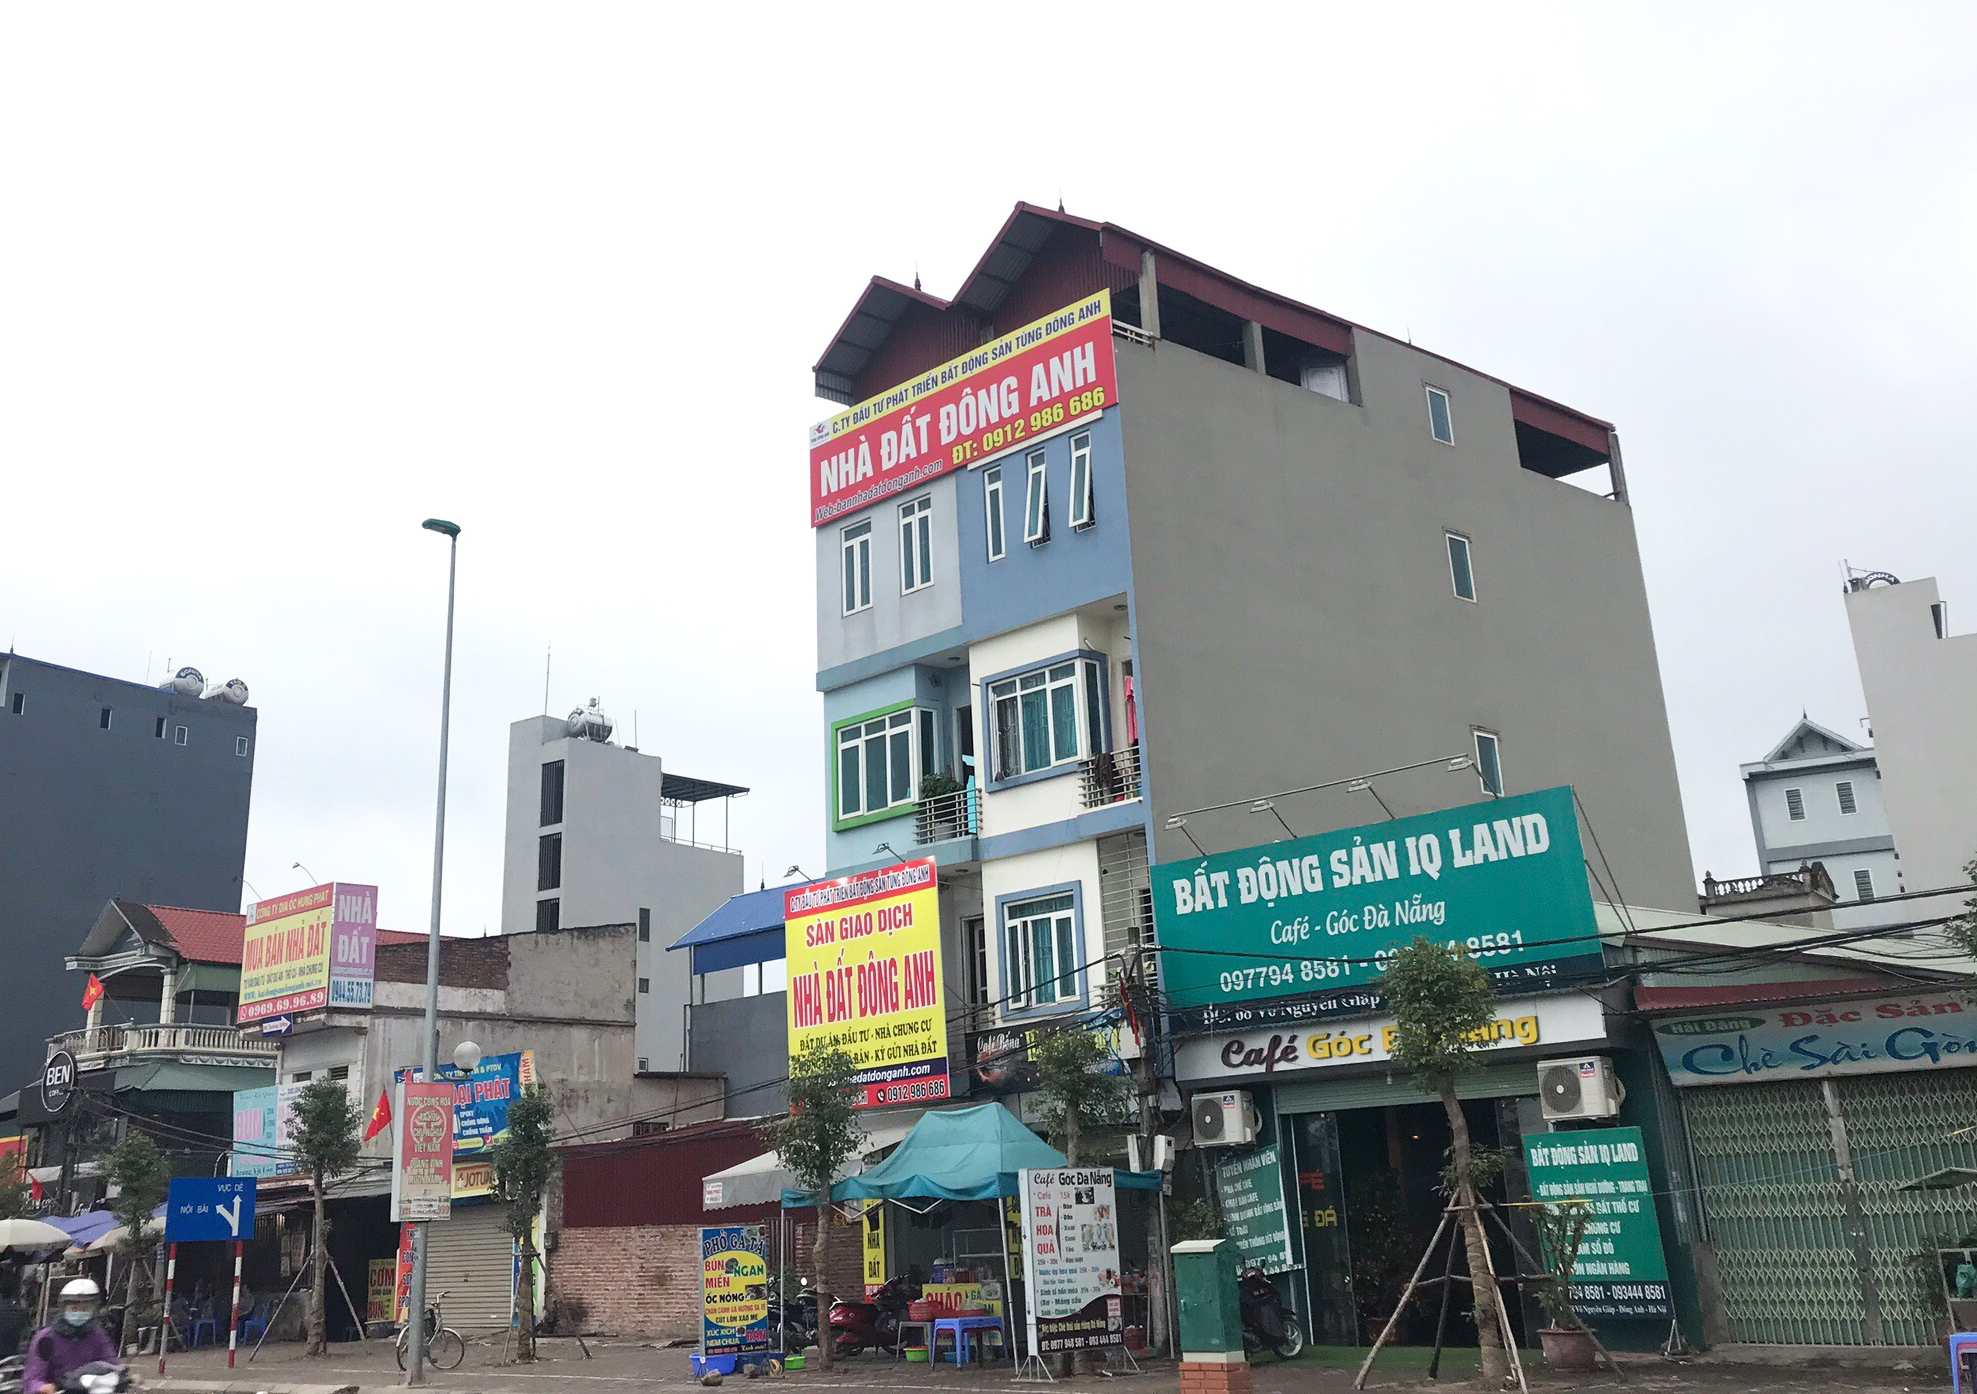 dat dong anh cao nhat 180 trieu dongm2 sot that hay ao